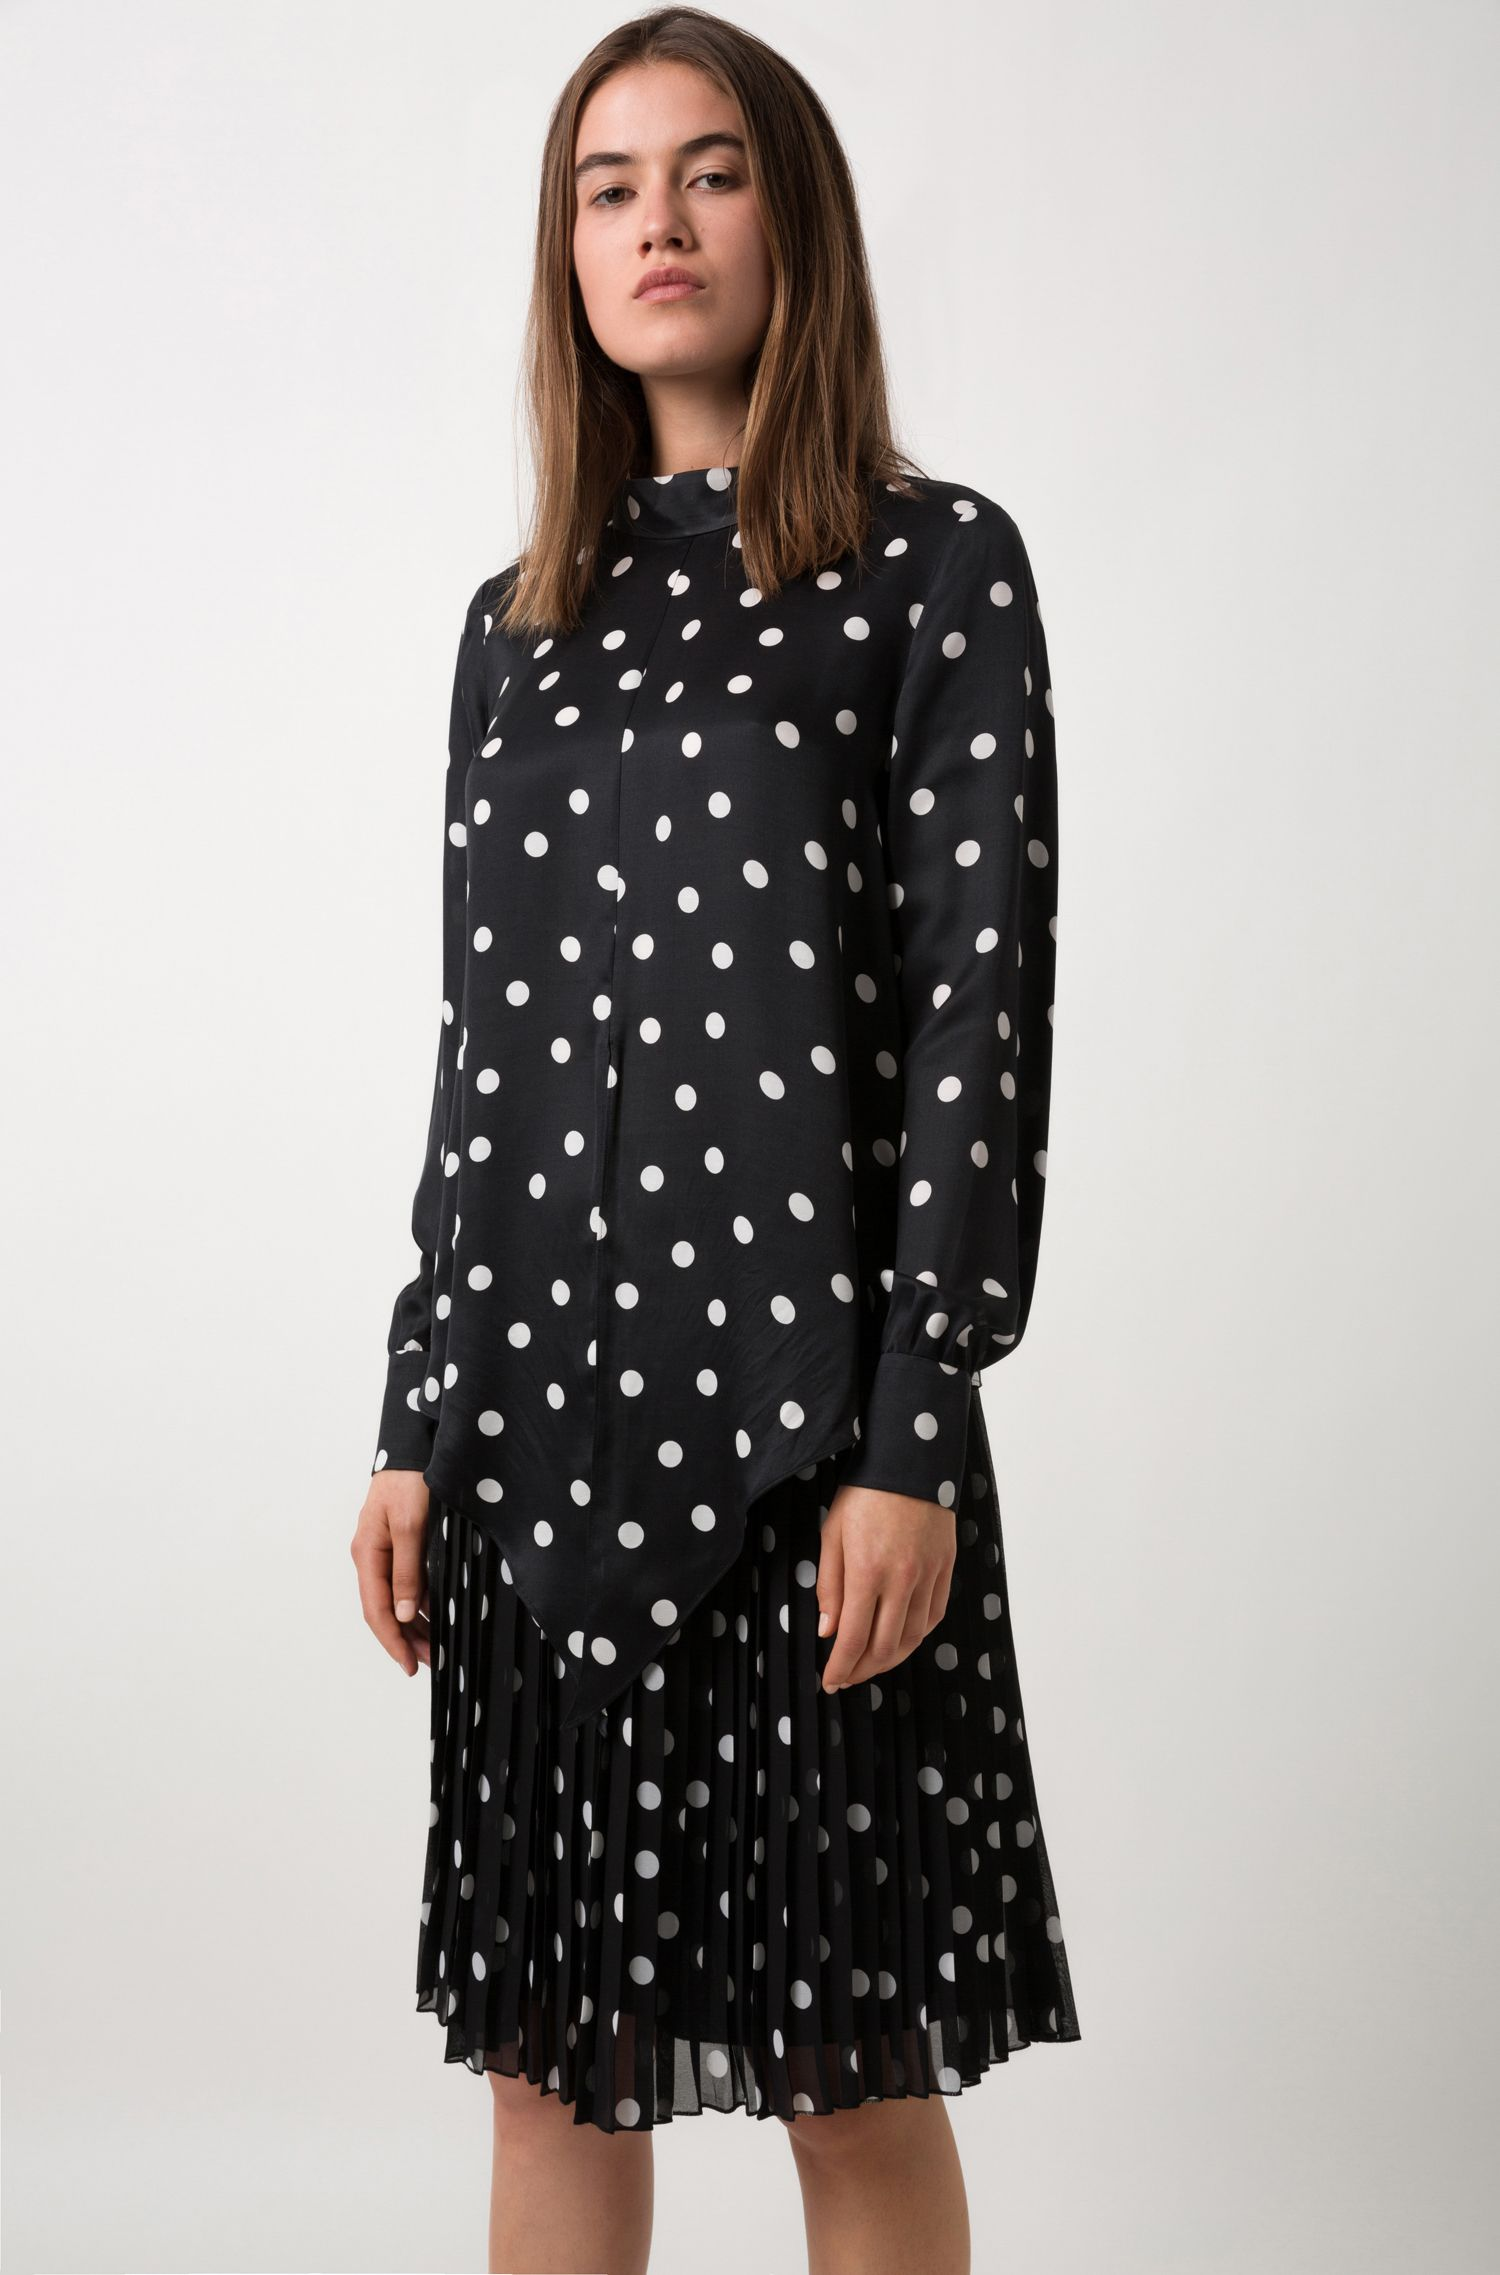 Silky polka-dot top with tie front, Patterned